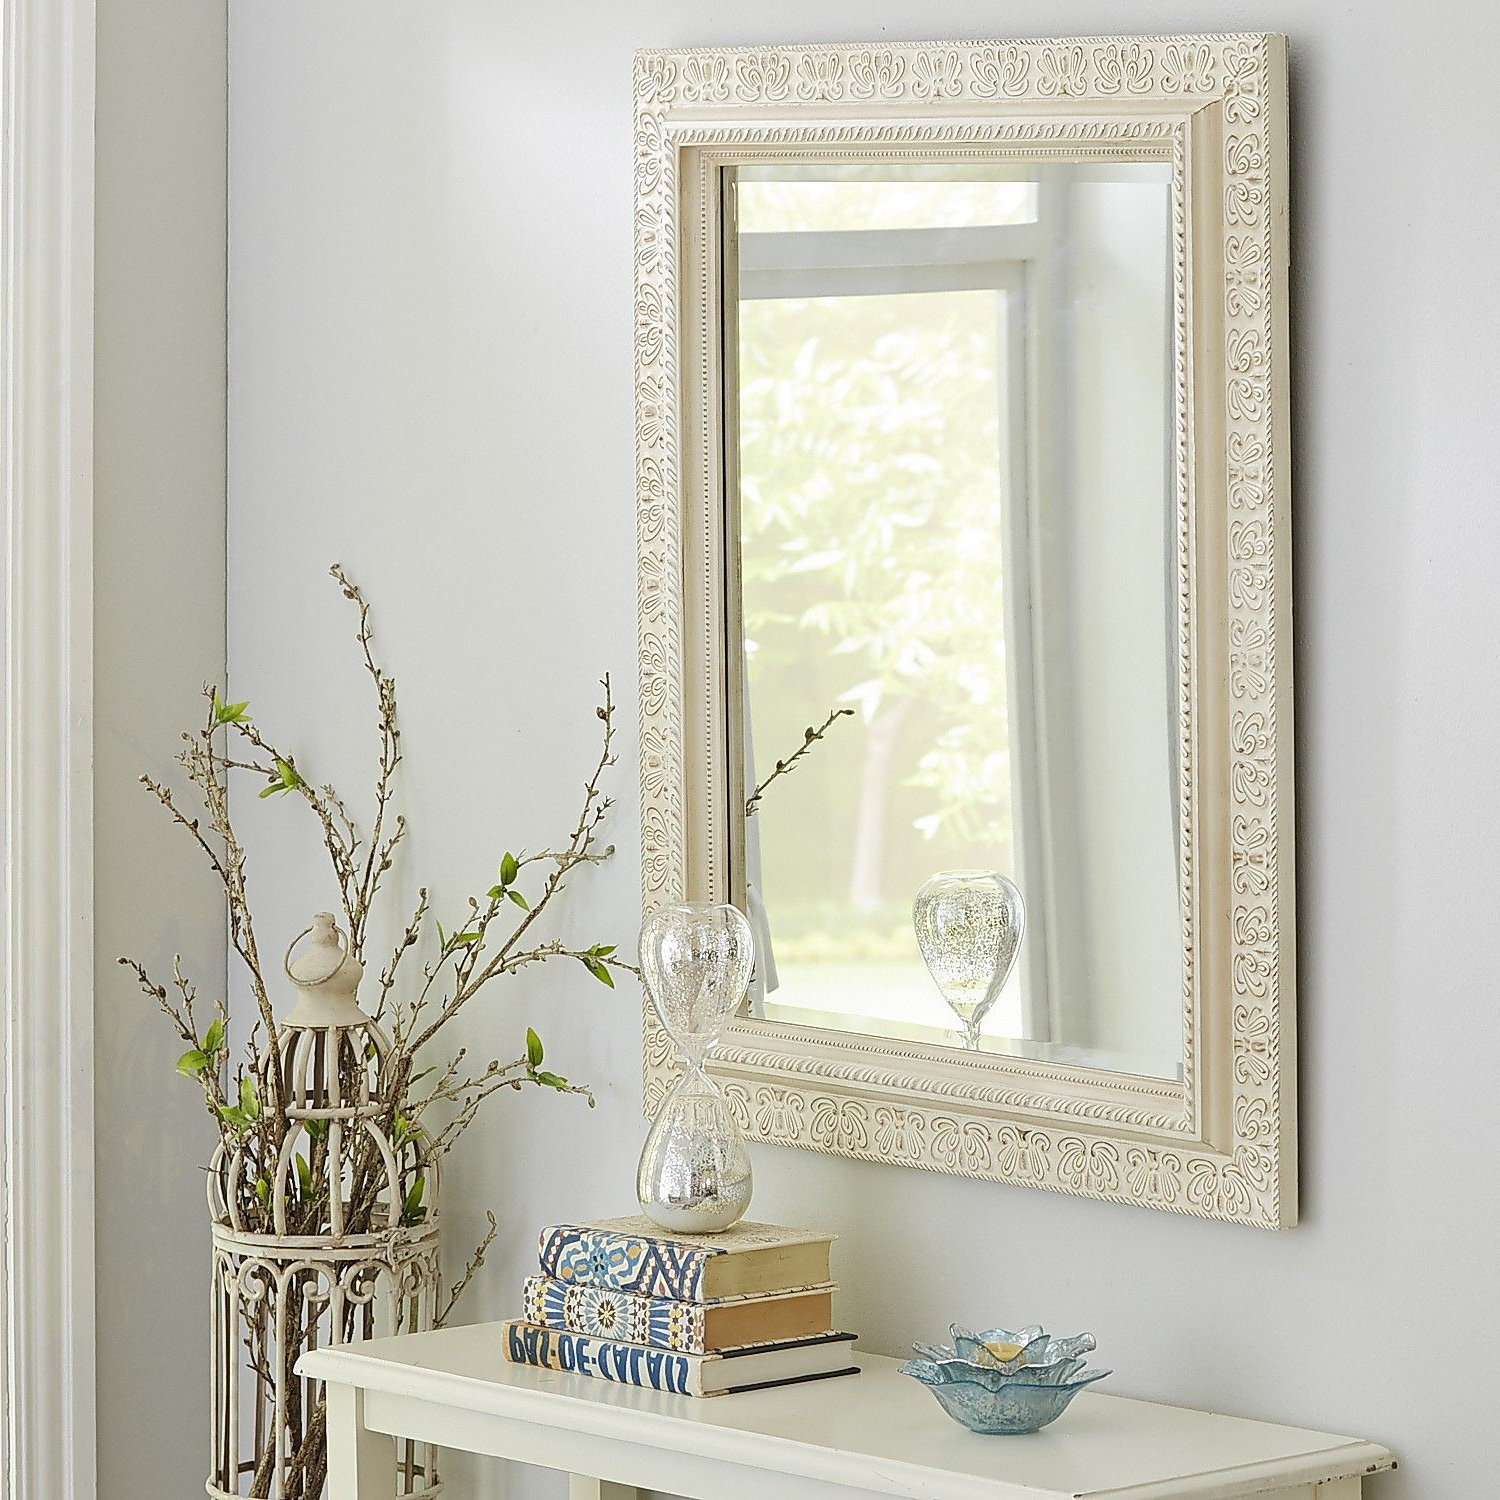 Mirror, Accent Decor, Emboss Throughout Widely Used Ulus Accent Mirrors (View 8 of 20)